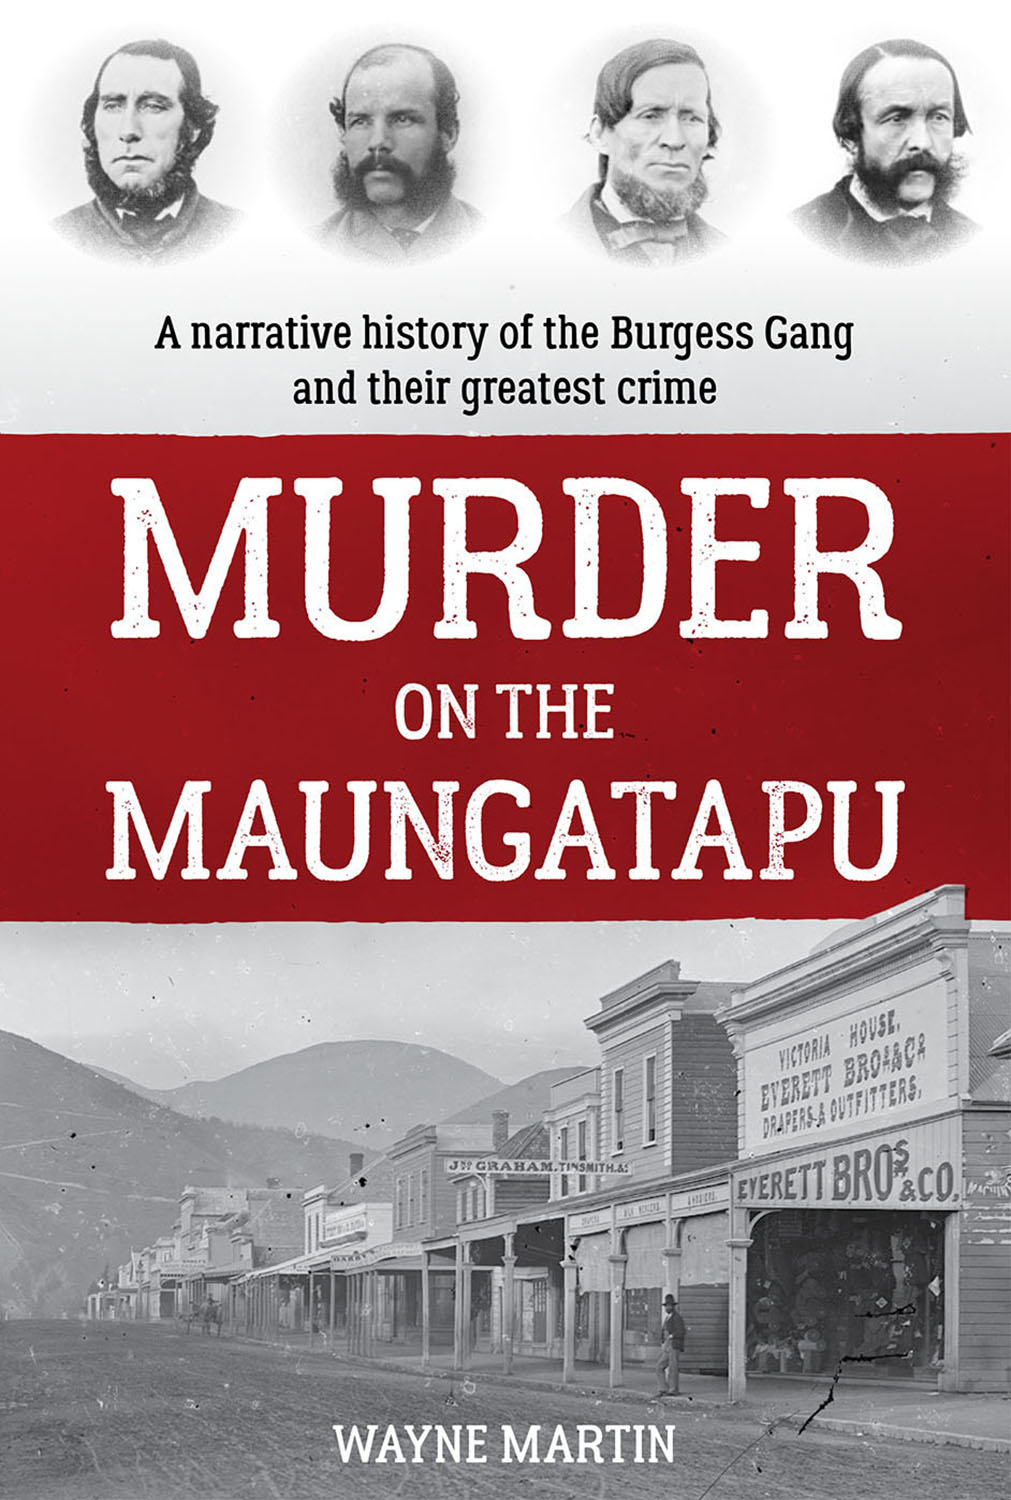 9781927145746_Murder on the Maungatapu_cover